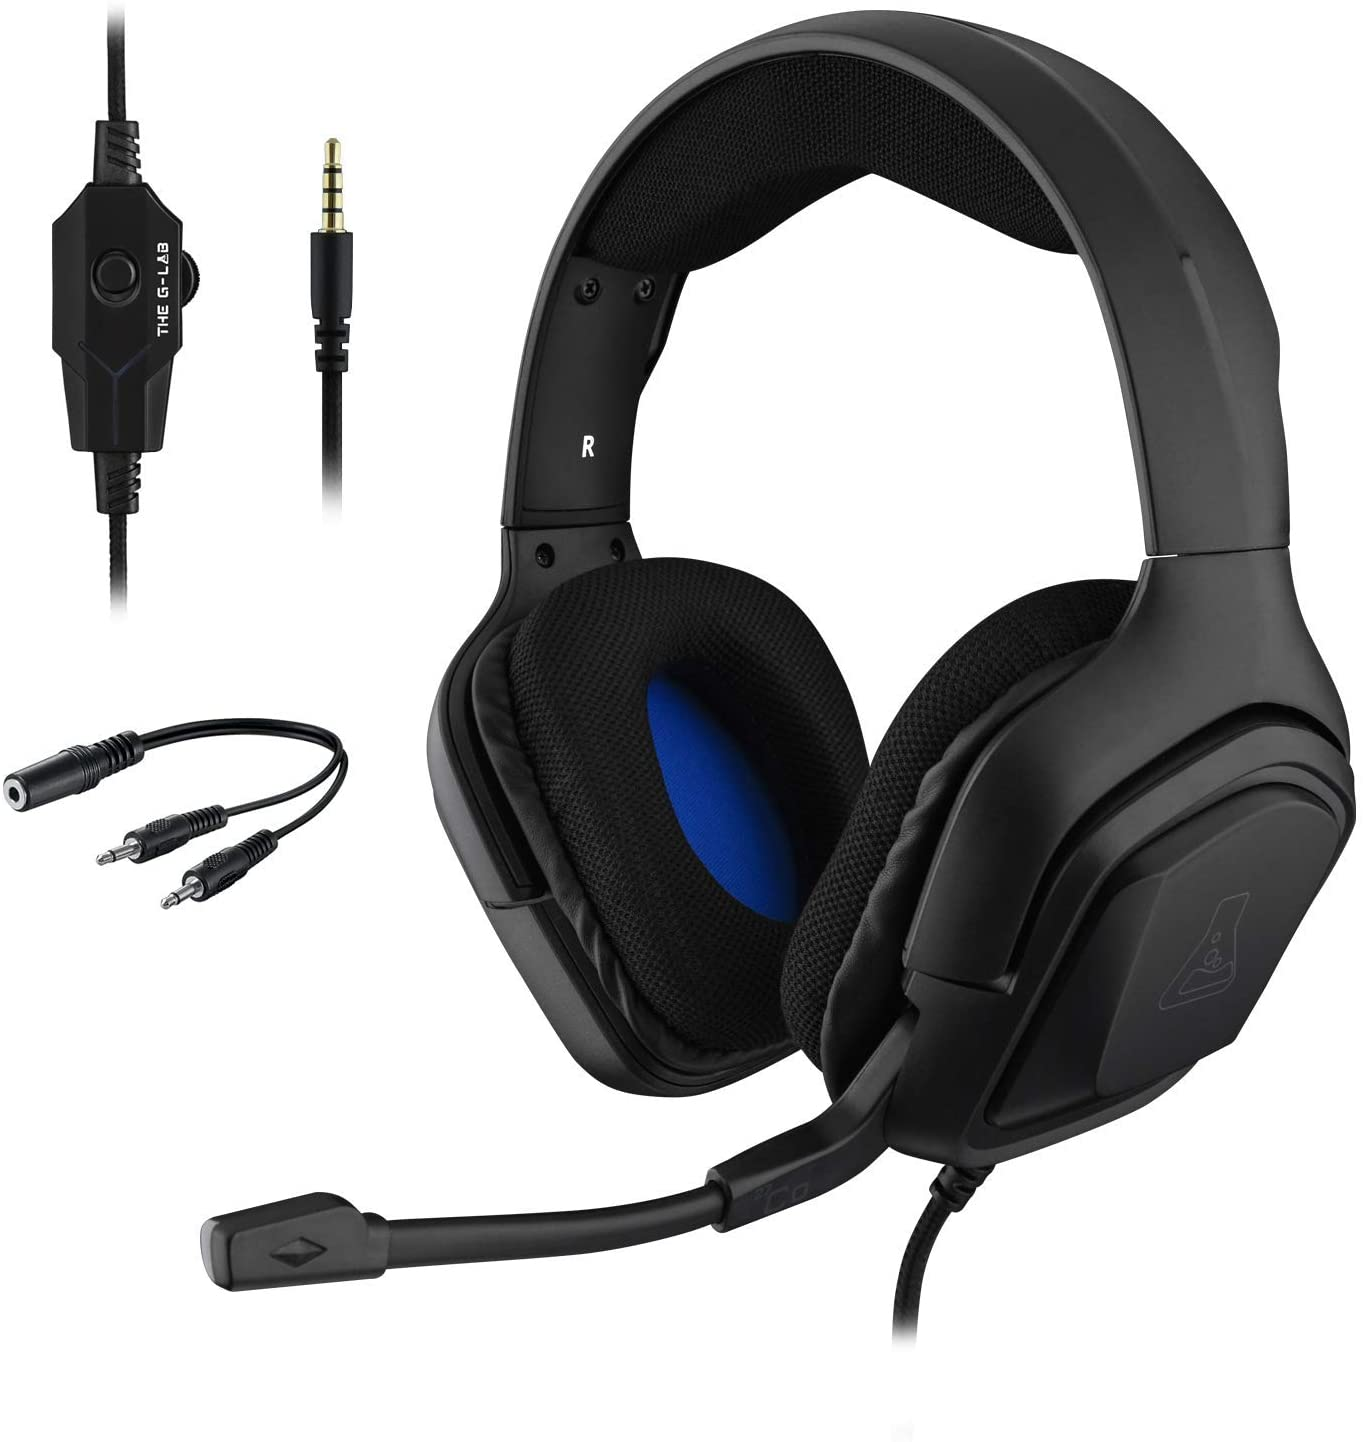 THE G-LAB Korp COBALT Auriculares Gaming - Auriculares estéreo, Ultra Ligero, Auriculares con Micrófono, Jack de 3.5 mm para PC, PS4, Xbox One, Mac, Tablet PC, Switch, Smartphone (Negro)